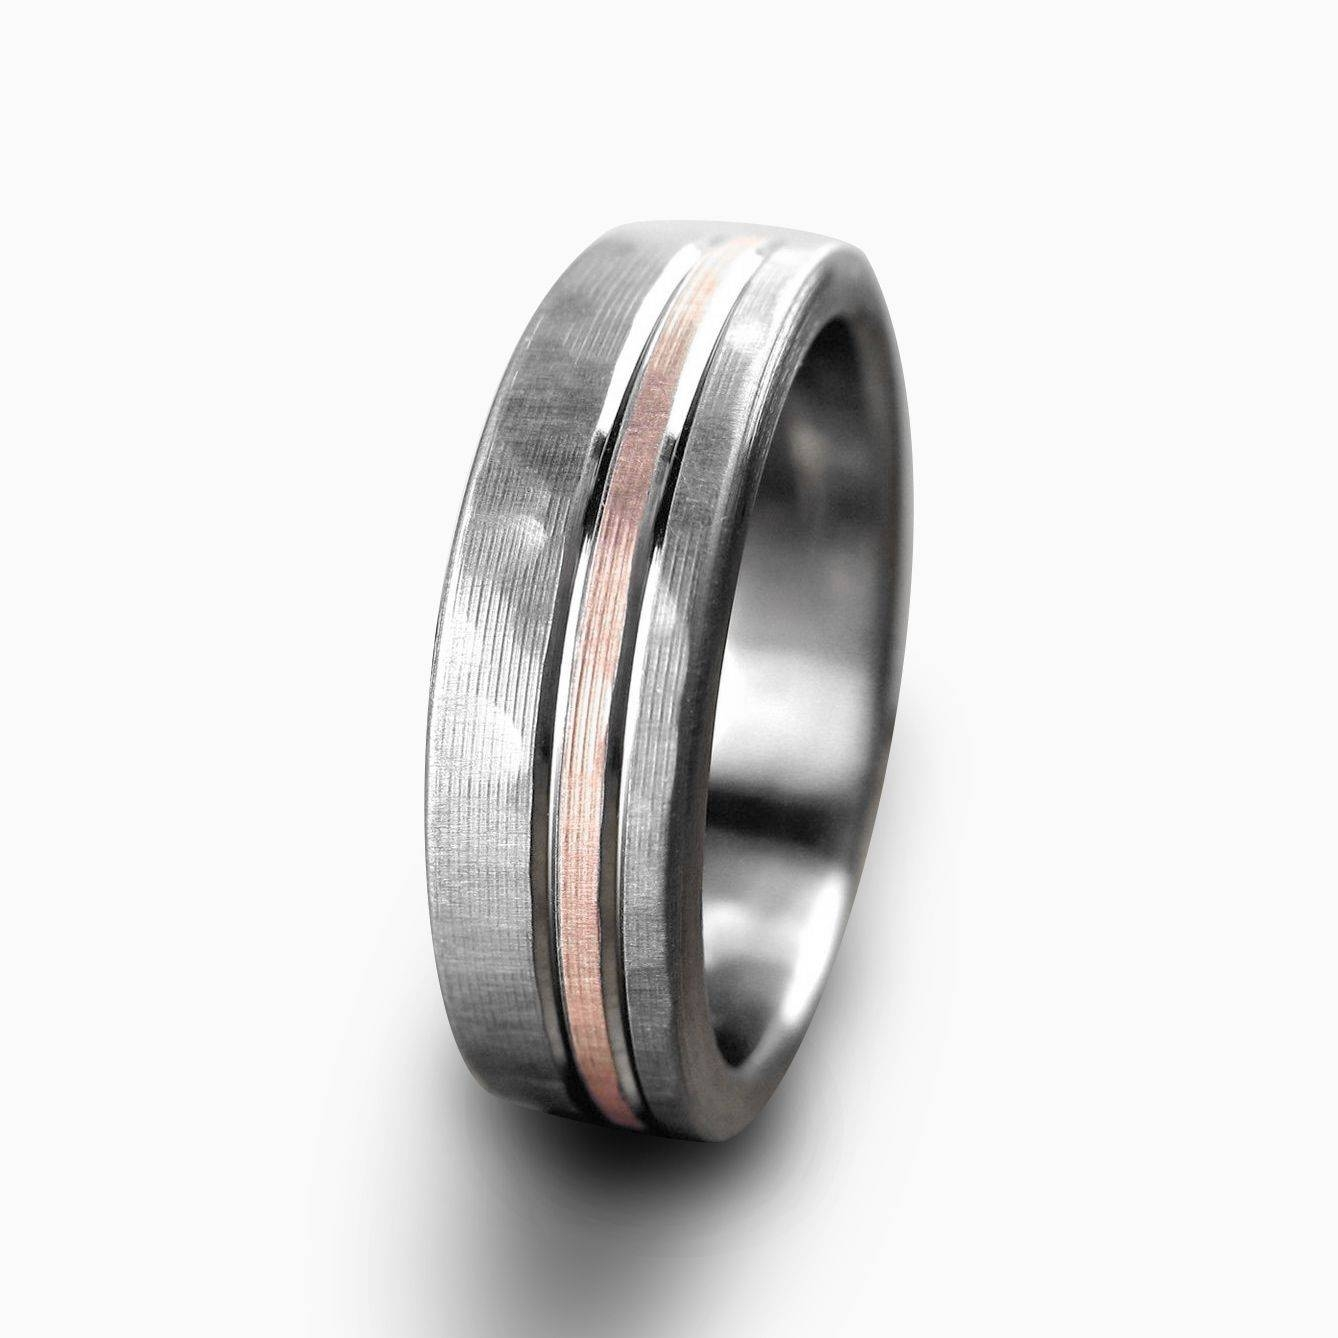 Buy A Hand Crafted Personalized Titanium & Rose Gold Hammered Pertaining To Hammered Rose Gold Wedding Bands (View 6 of 15)